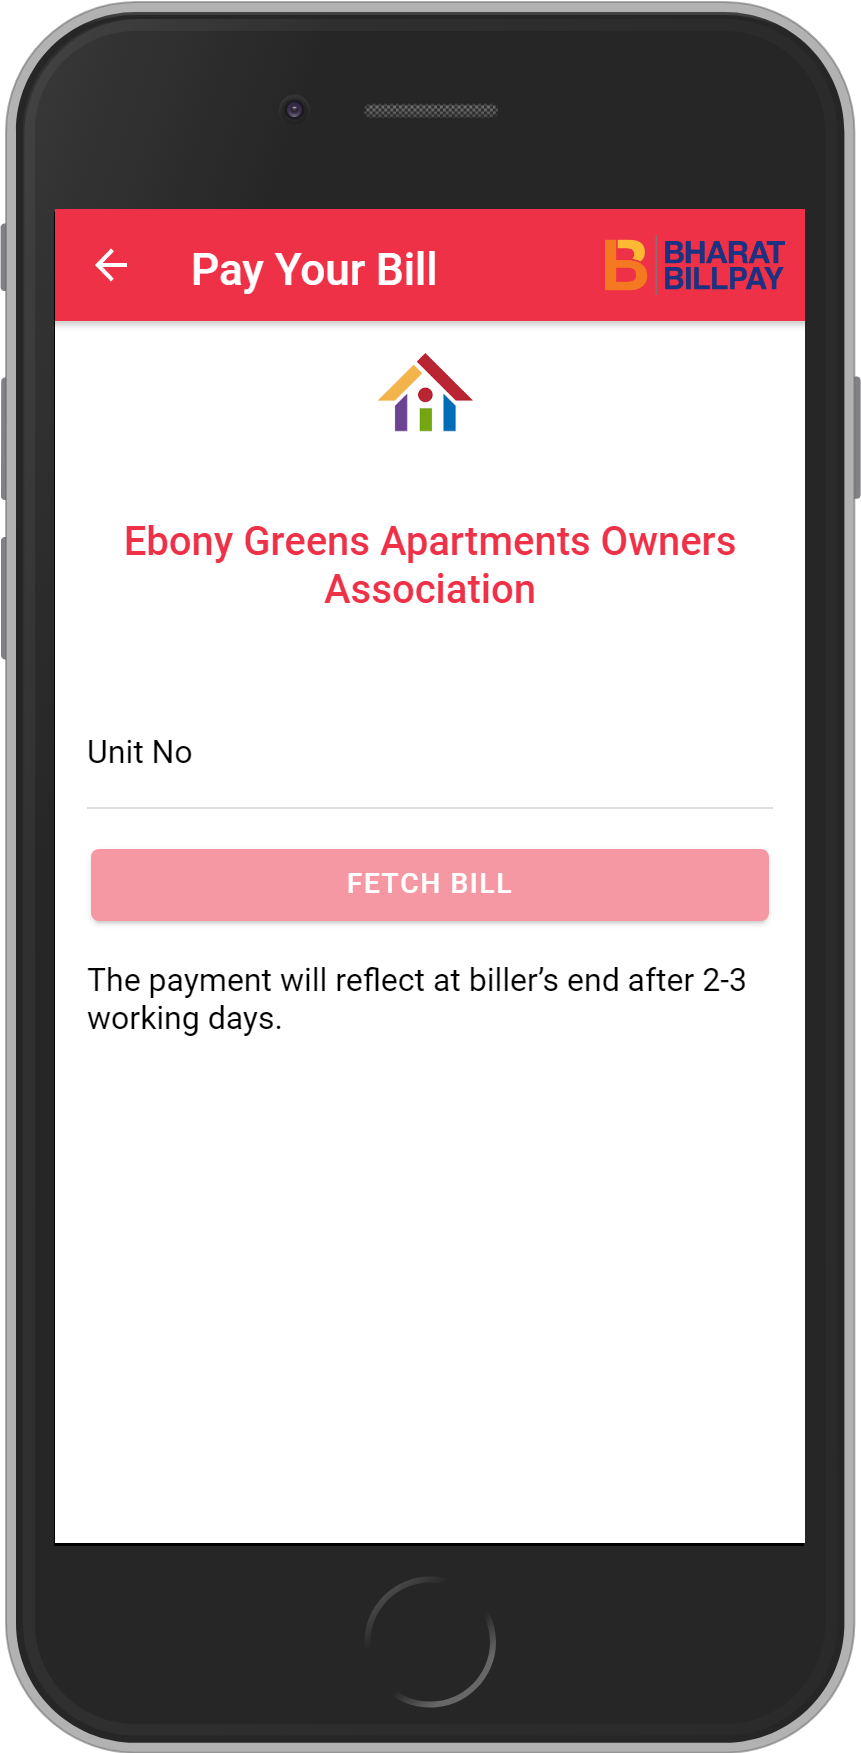 Get UNLIMITED <b>0.1%</b> CASHBACK on Ebony Greens Apartments Owners Association Recharges.